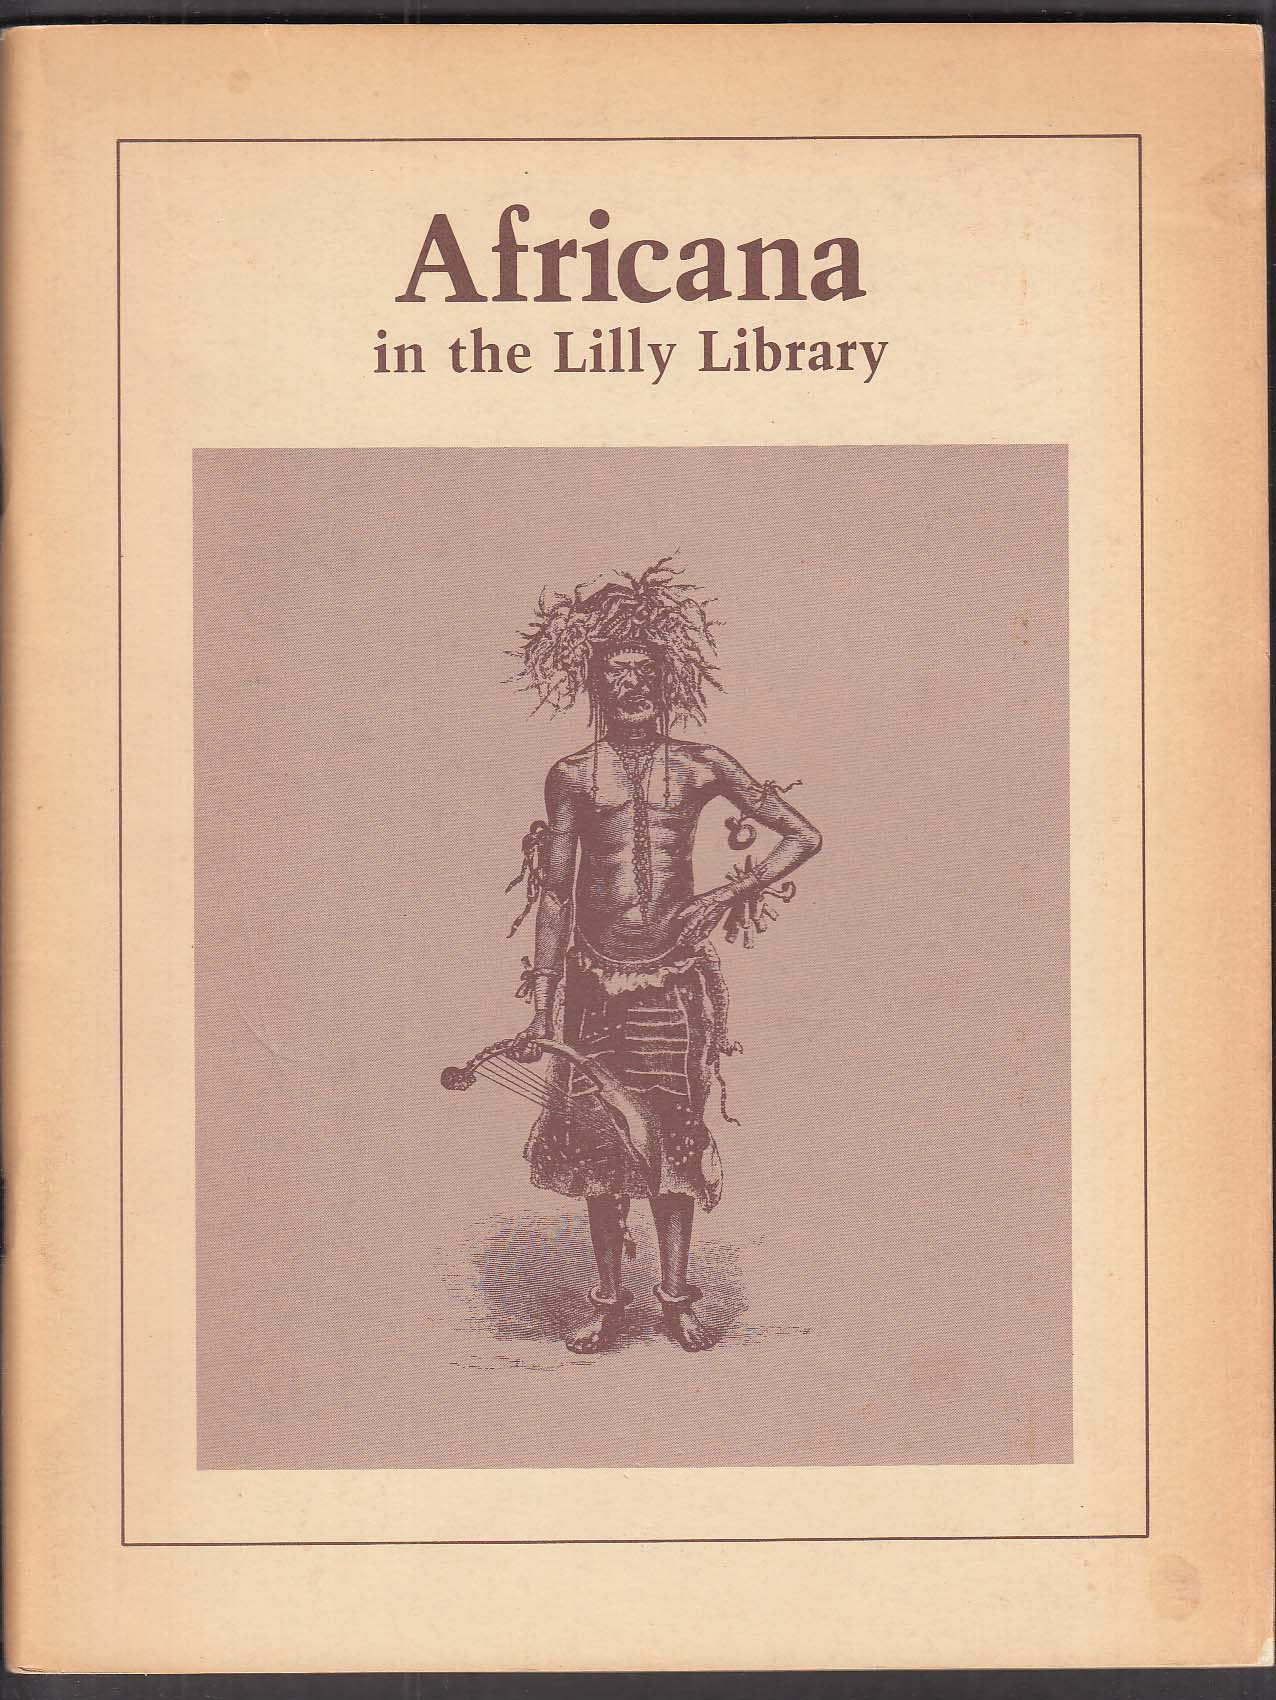 Africana - Lilly Library Indiana University exhibit catalog 1981